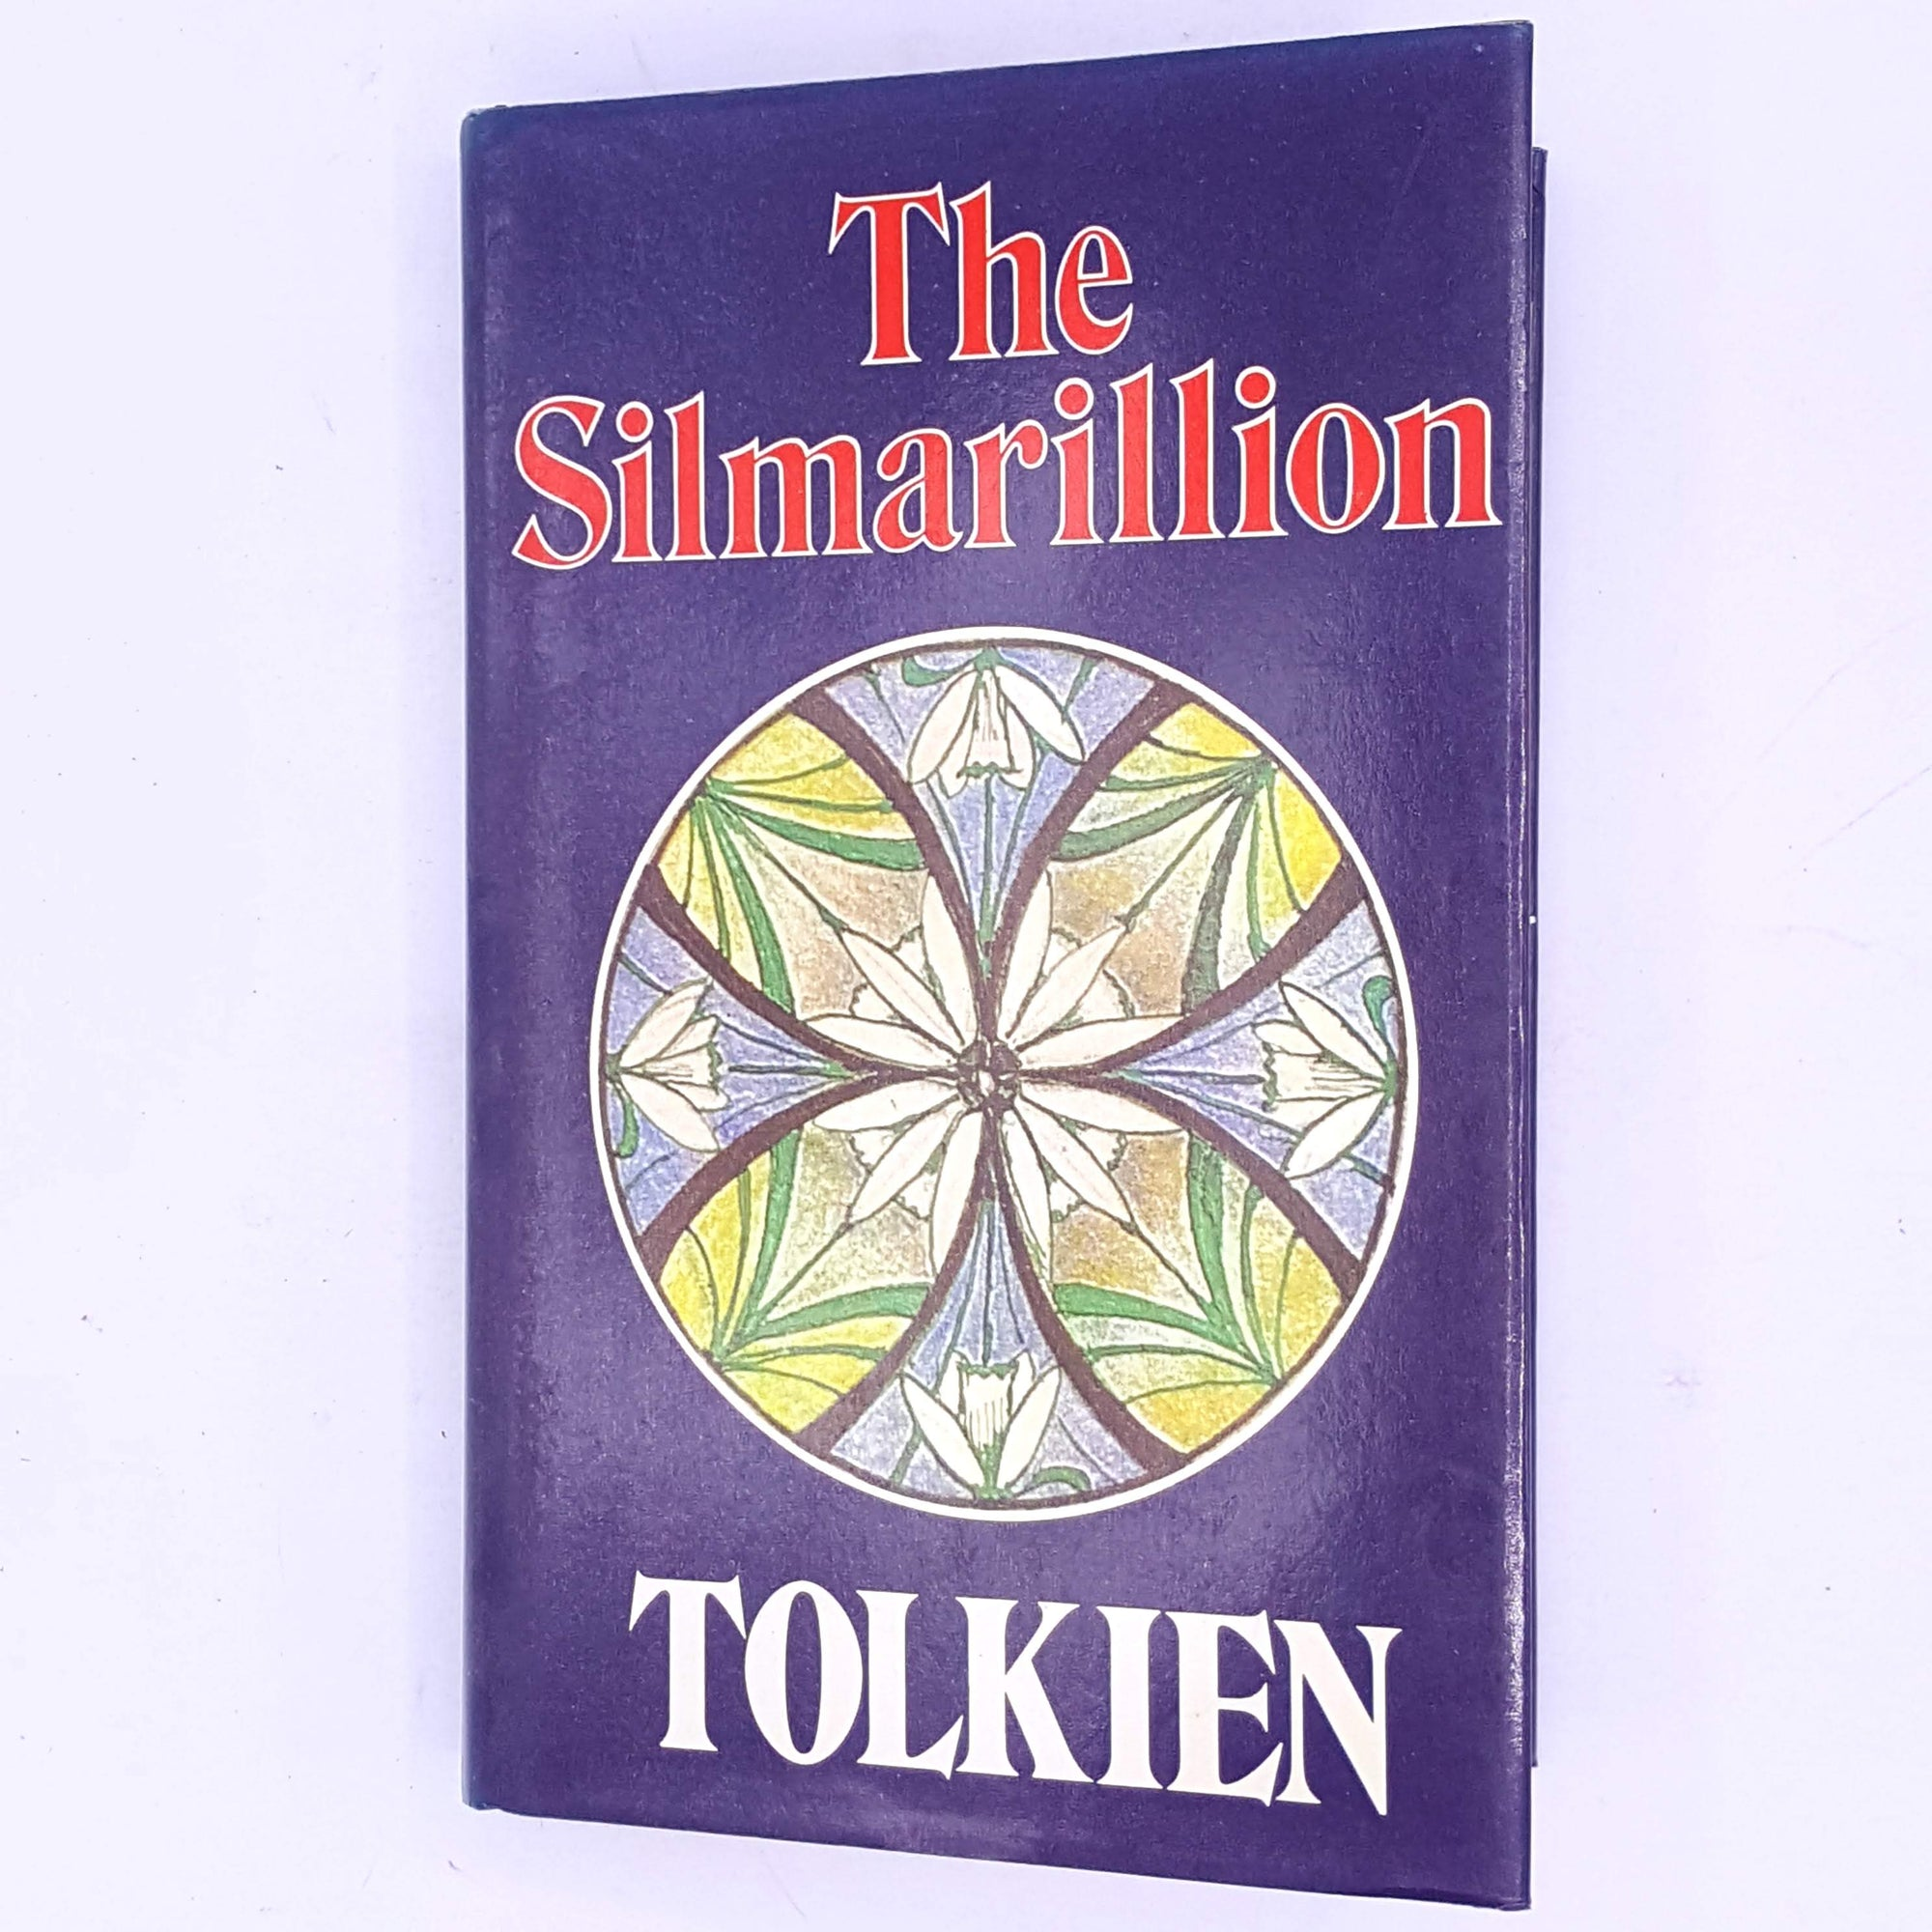 J.R.R. Tolkien's The Simarillion.